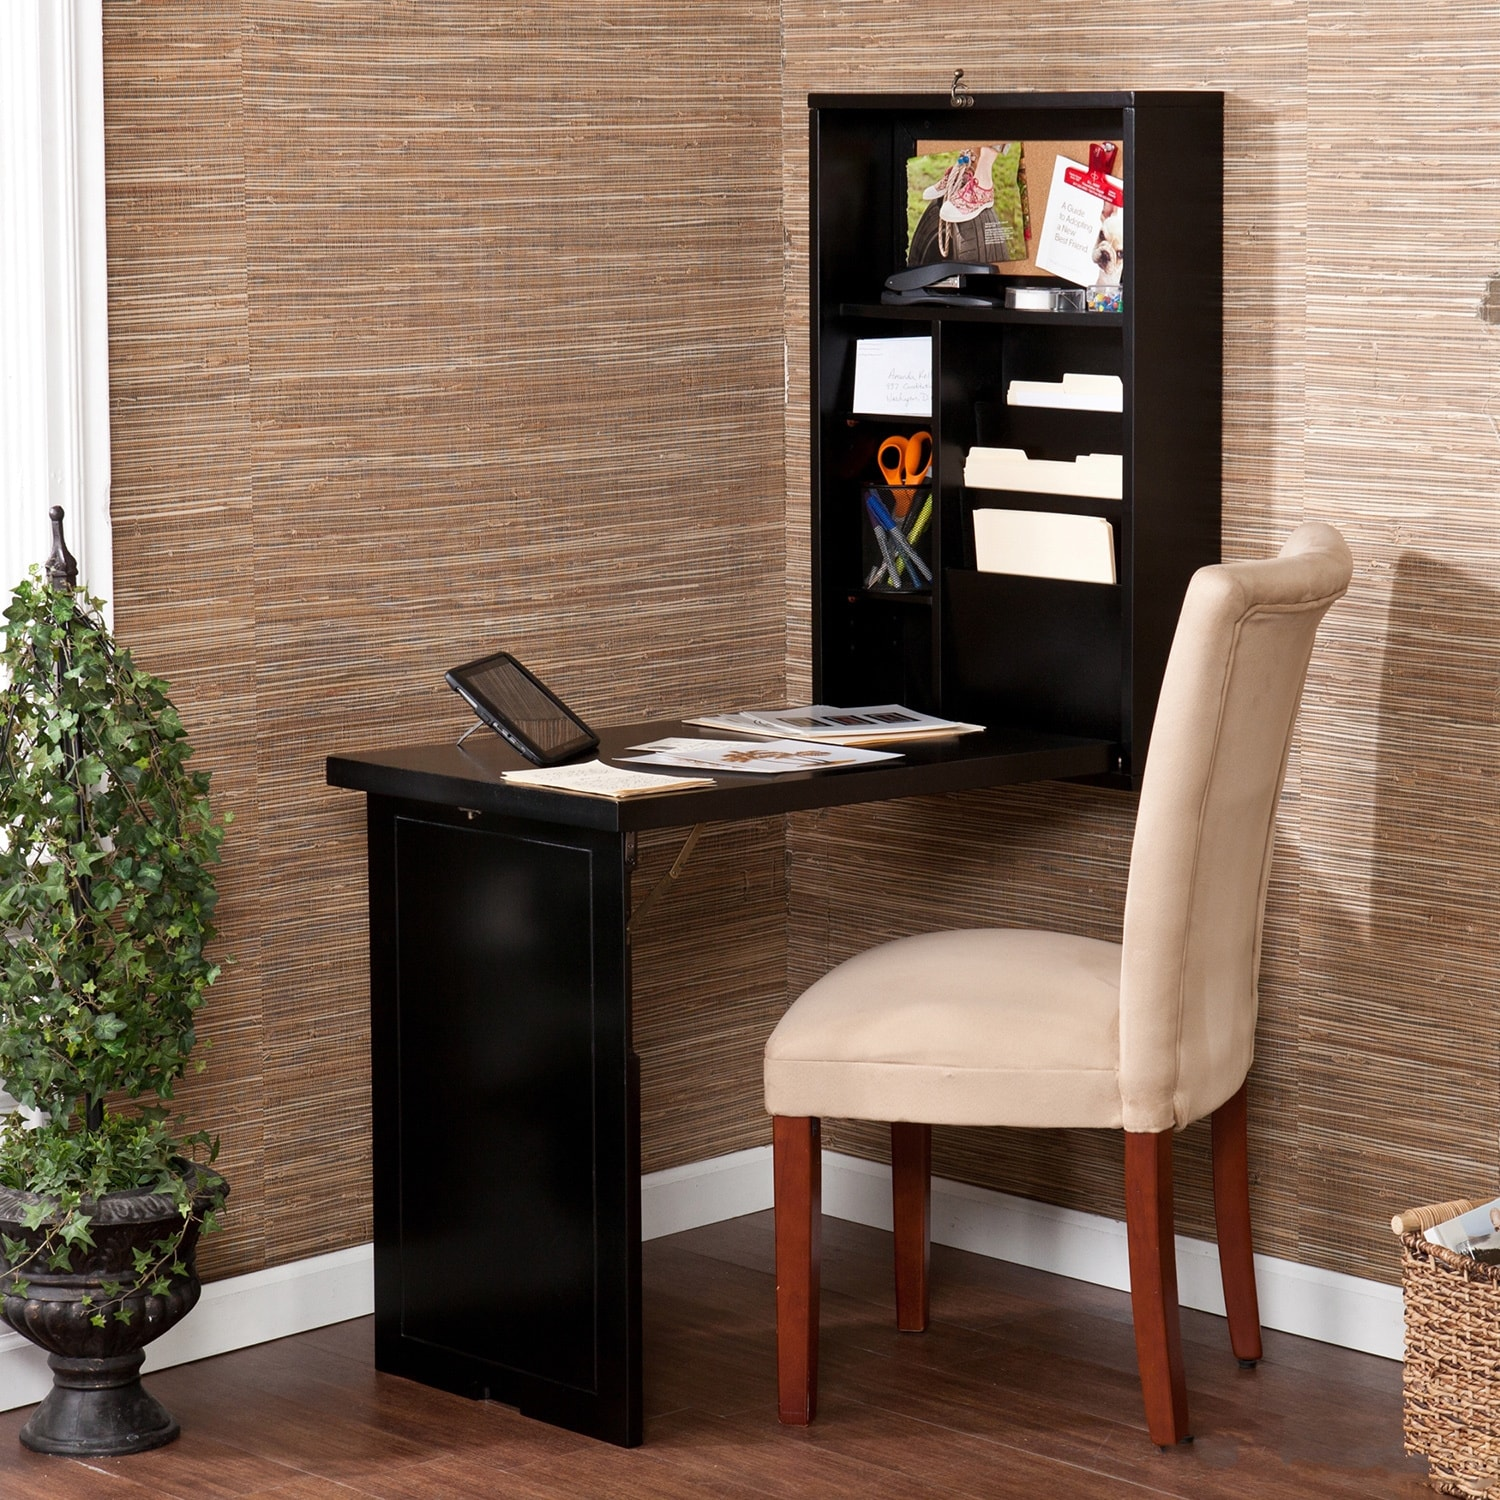 out sei southern convertible leo secretary fold walnut desk martin enterprises holly